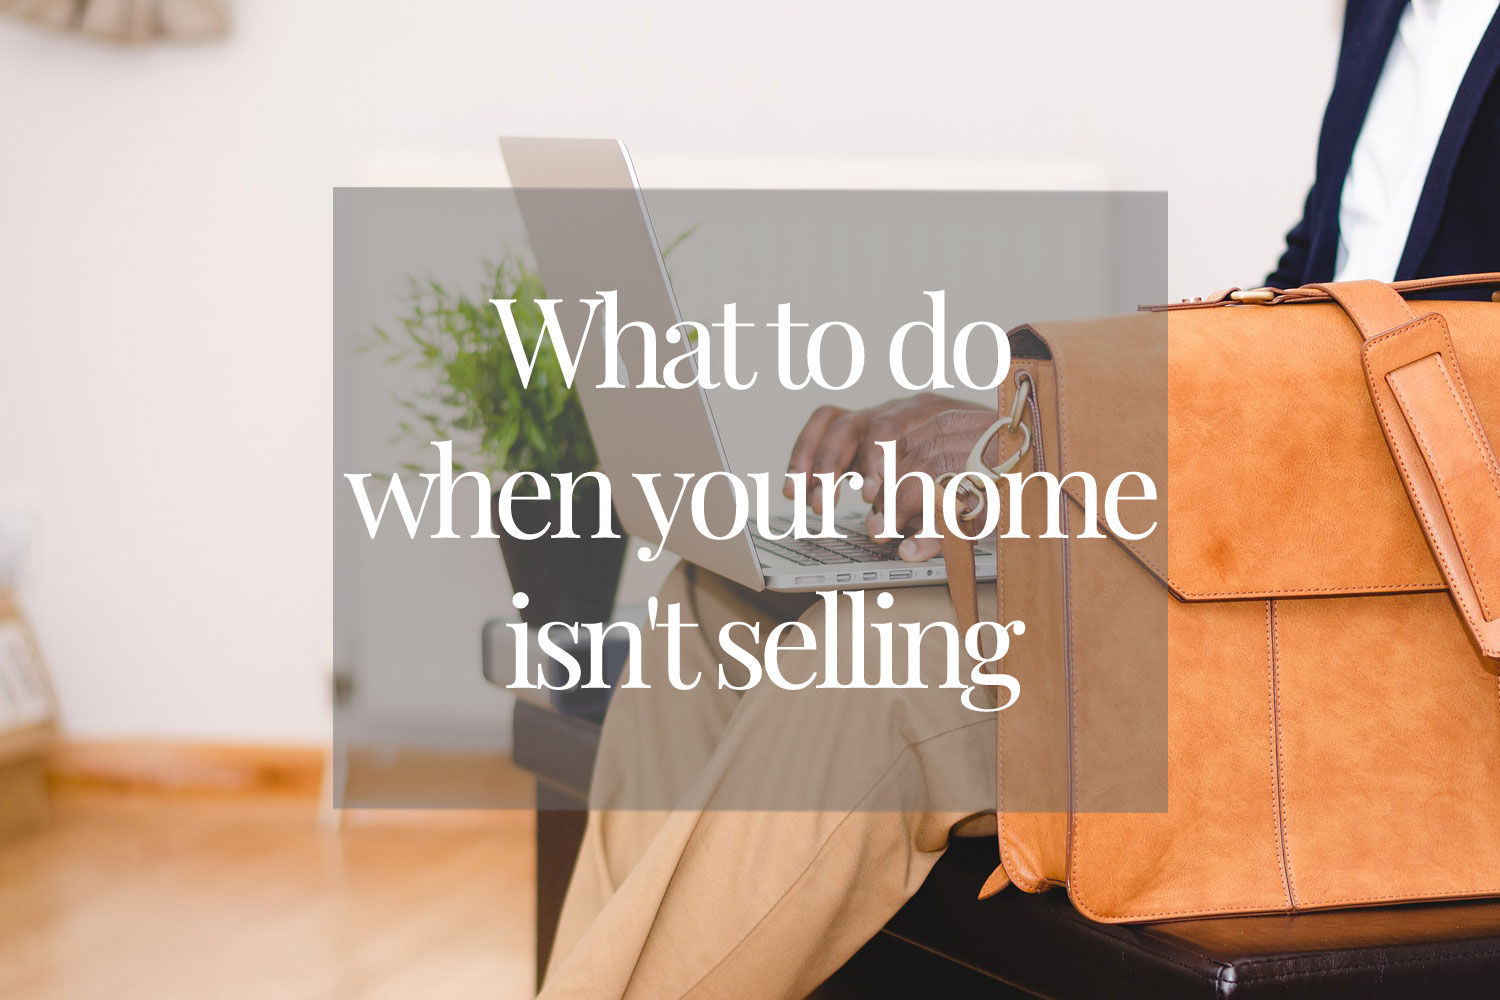 what-to-do-when-your-home-isnt-selling